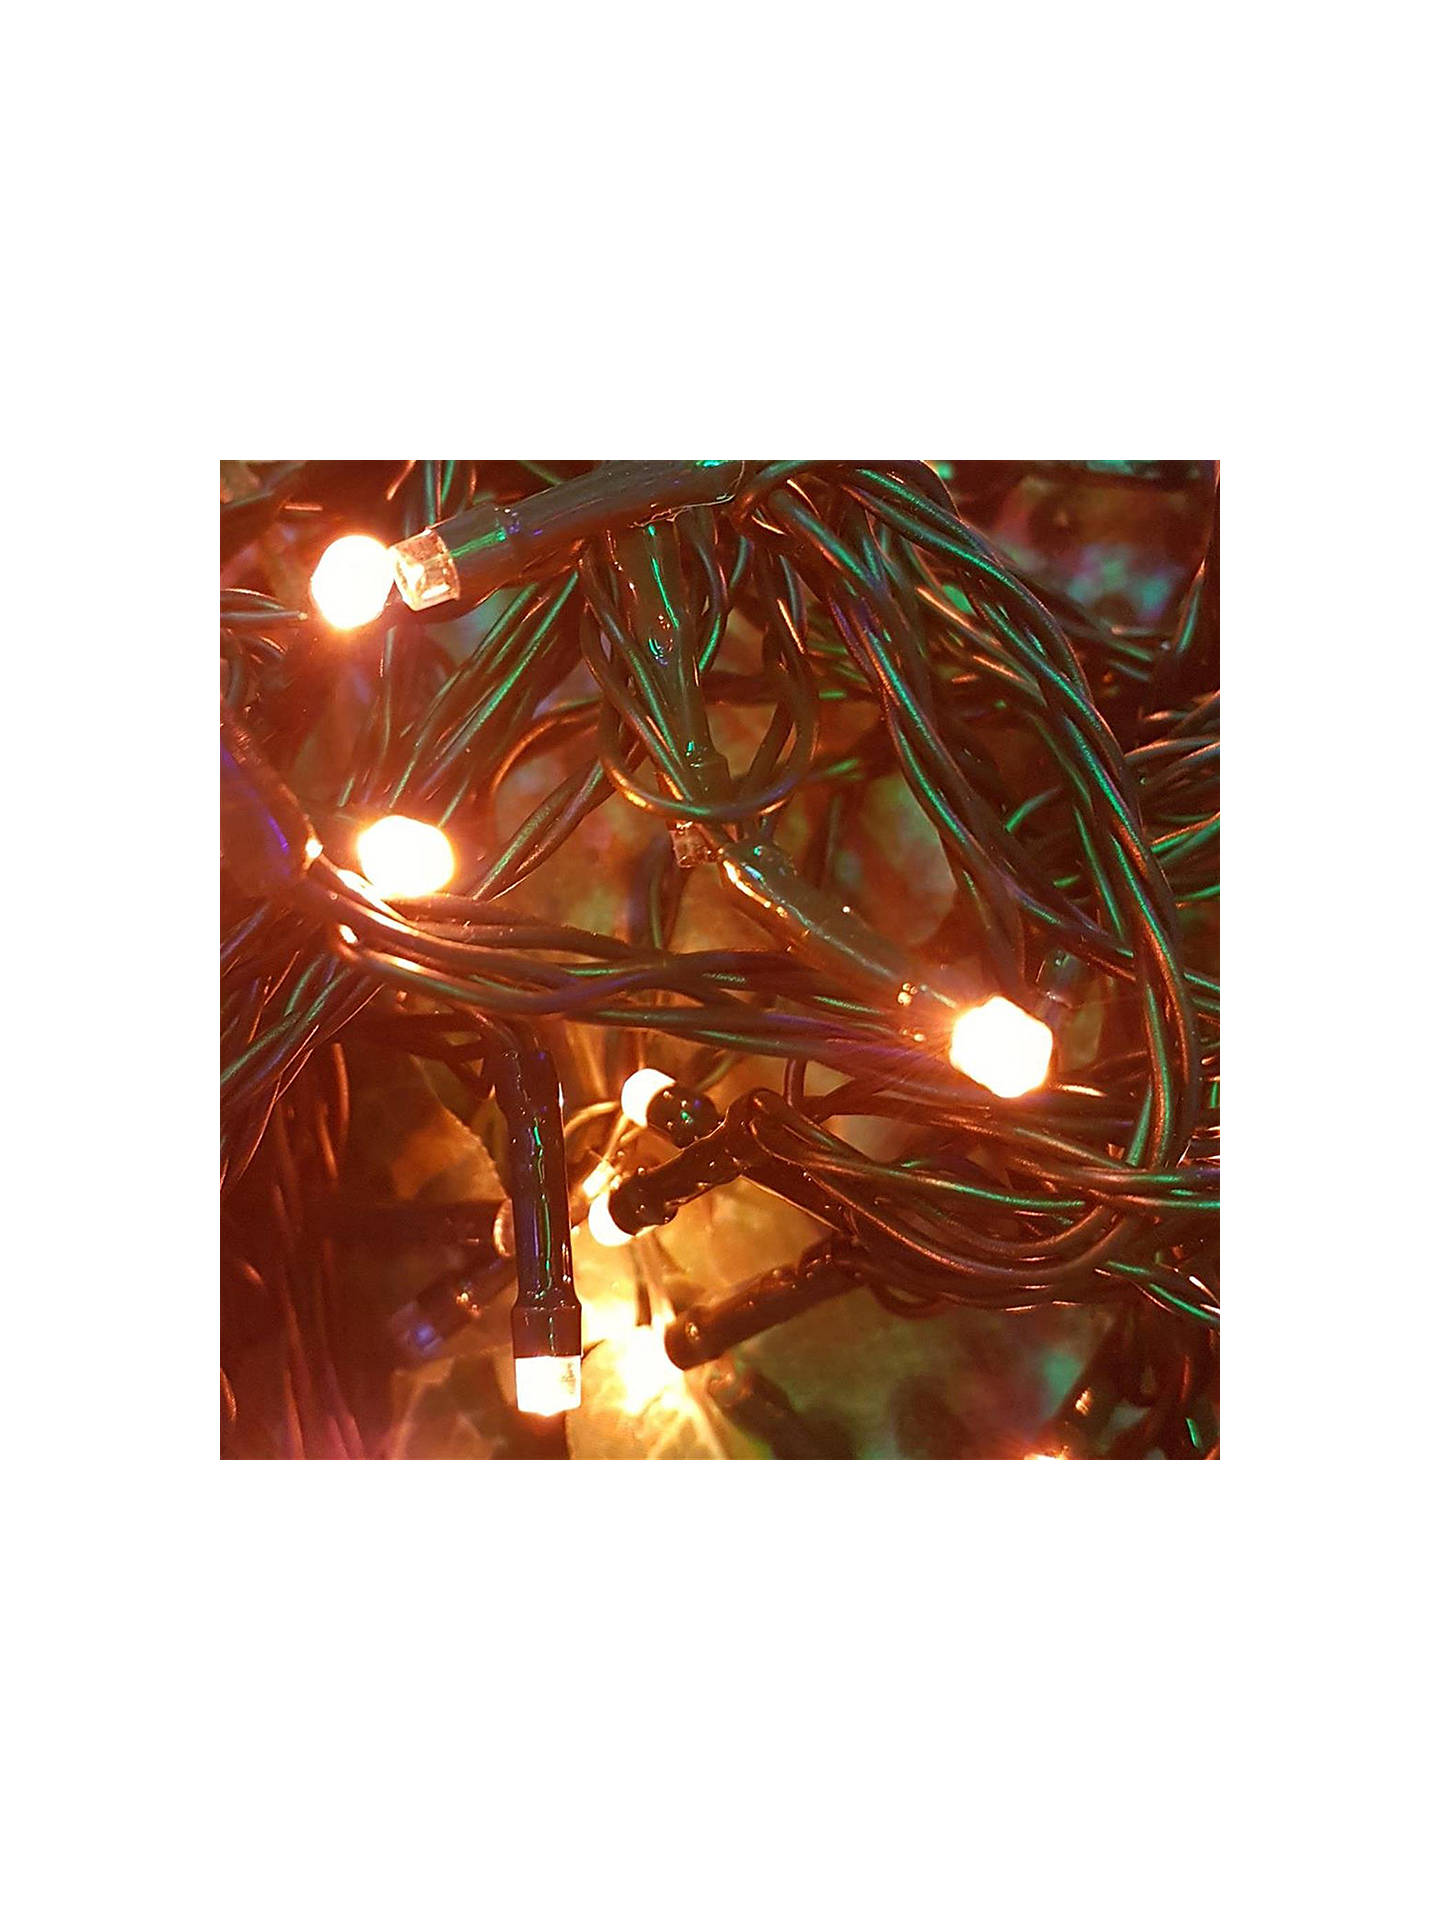 BuyPremier Decorations 200 LED Super Bright Lights Online at johnlewis.com